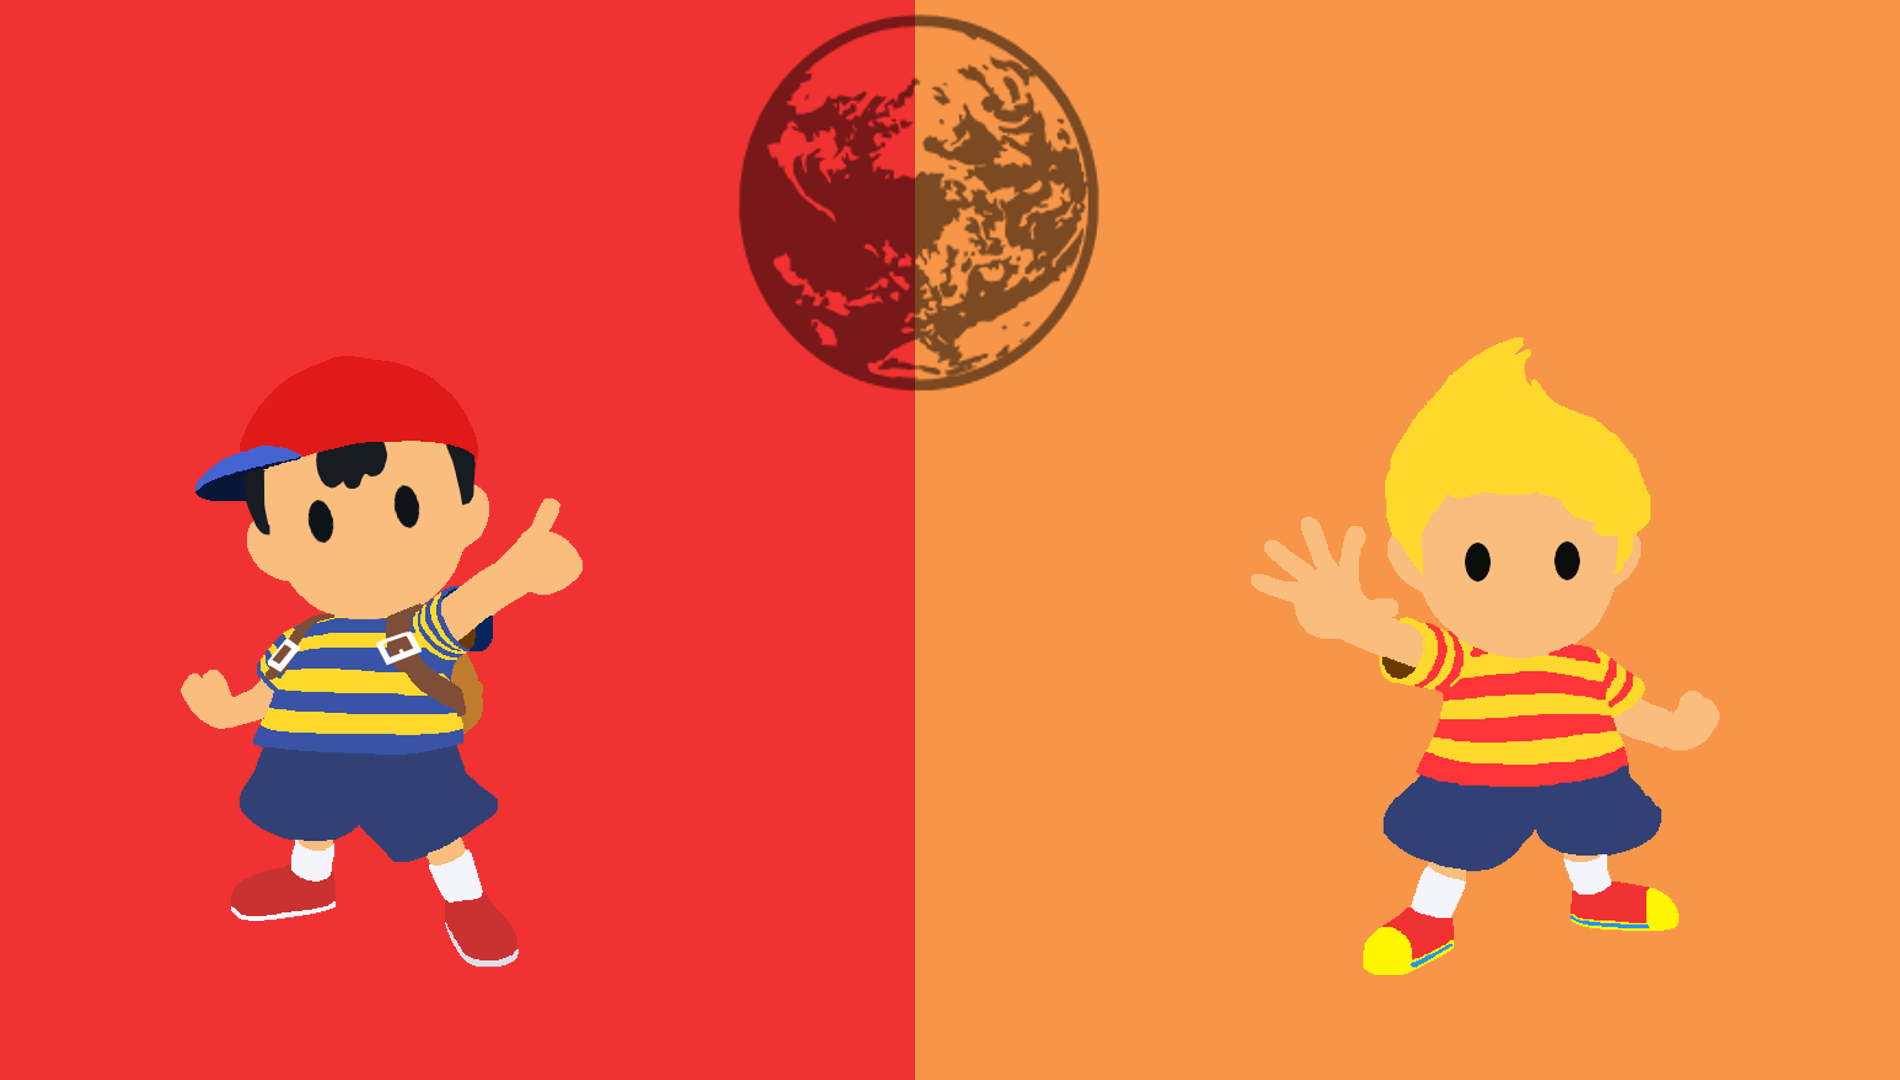 Ness and Lucas Minimalistic Wallpaper by MI6zombieguy92 1900x1080